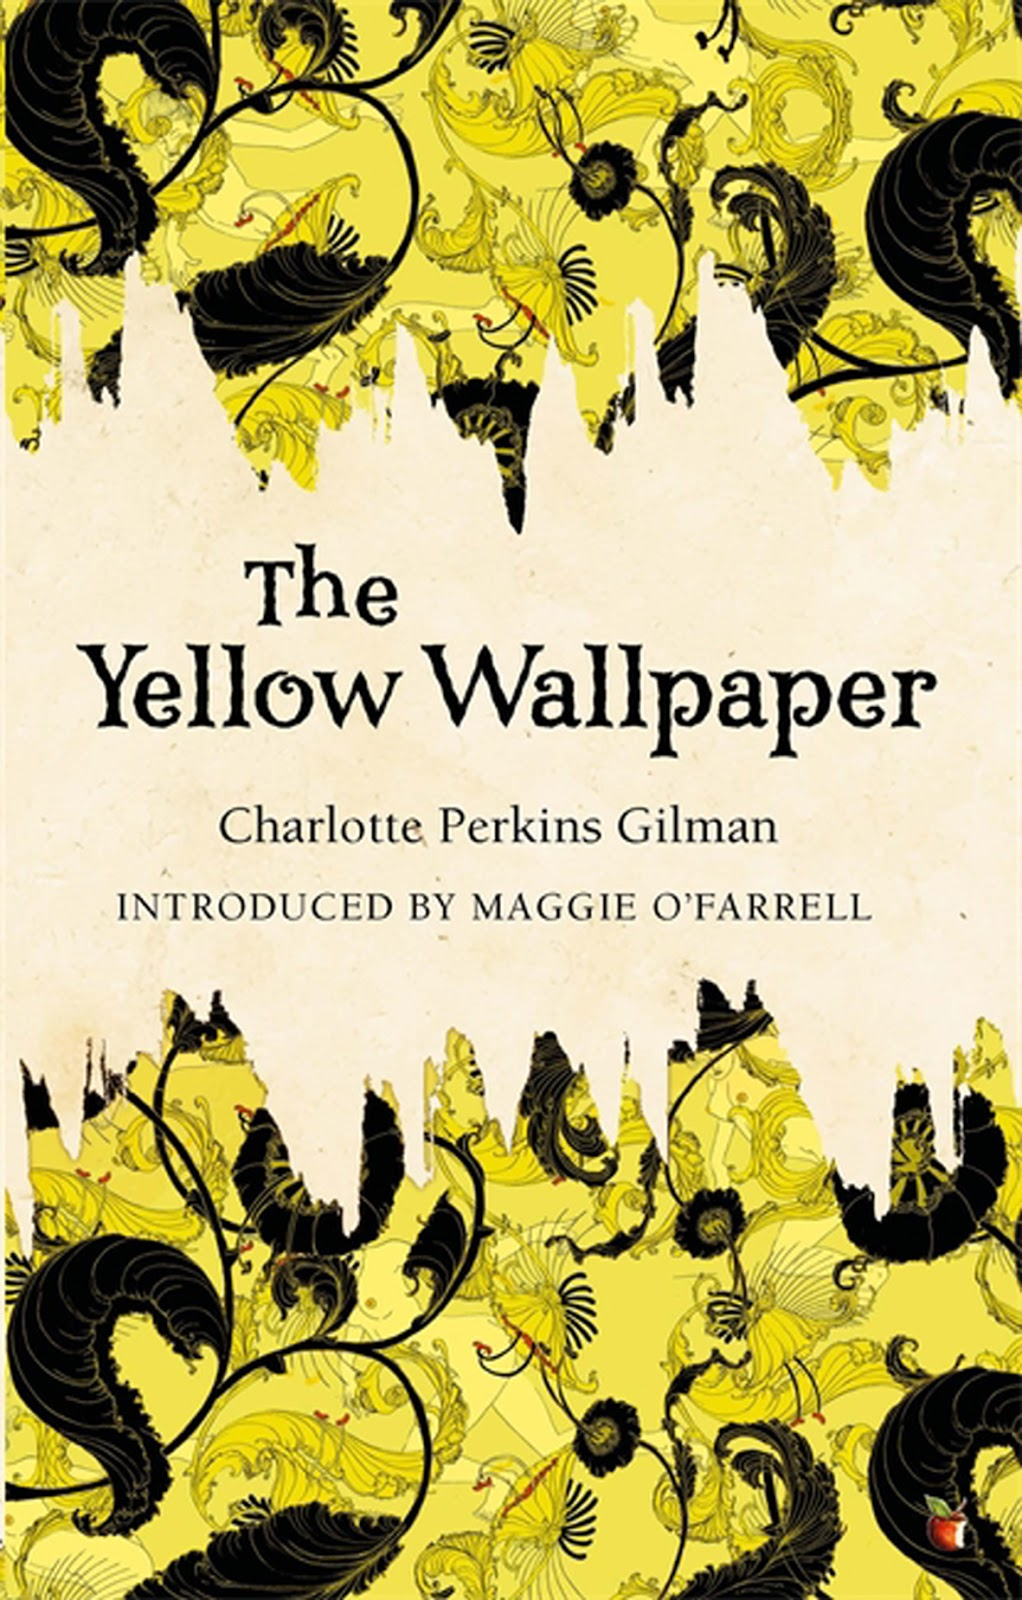 feminism in the yellow wallpaper a short story by charlotte perkins gilman Charlotte perkins gilman's radical feminism still challenges us today short story the yellow wallpaper feminism of charlotte perkins gilman.